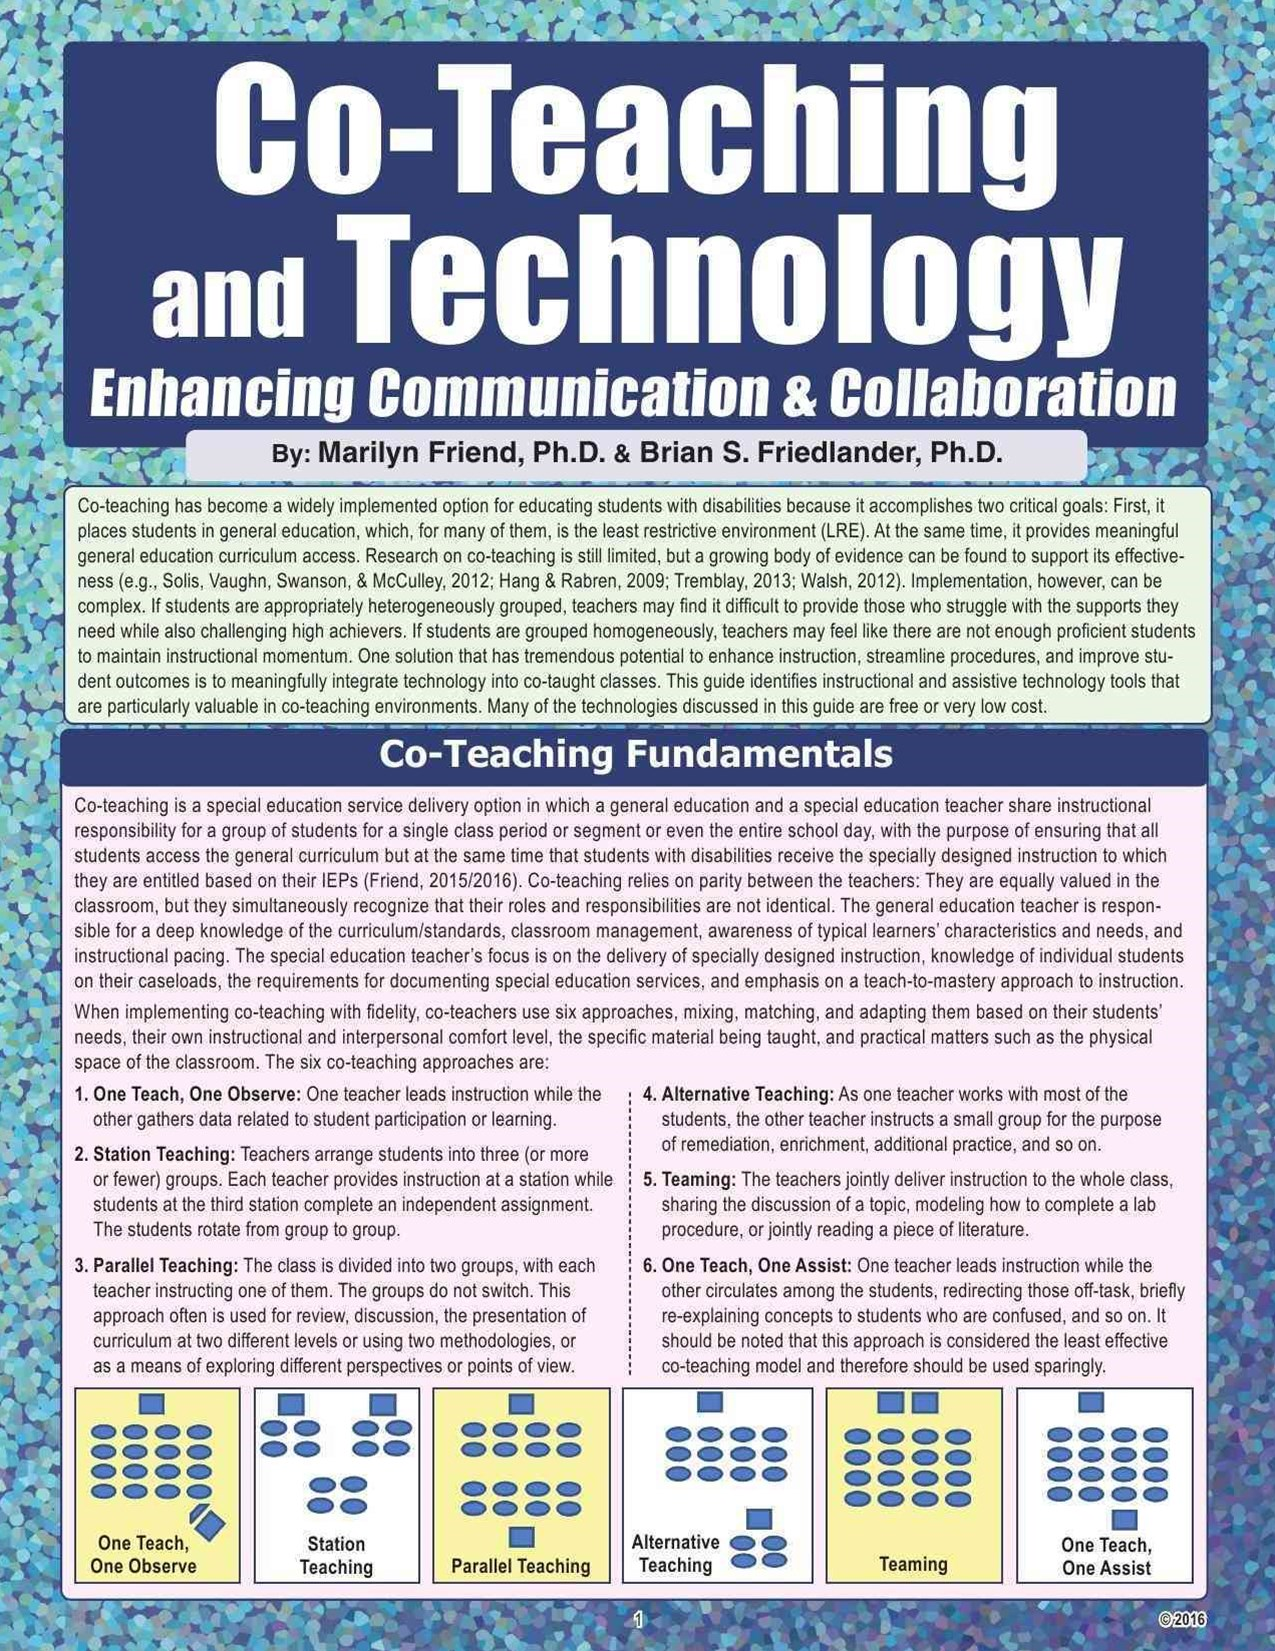 Co-Teaching and Technology